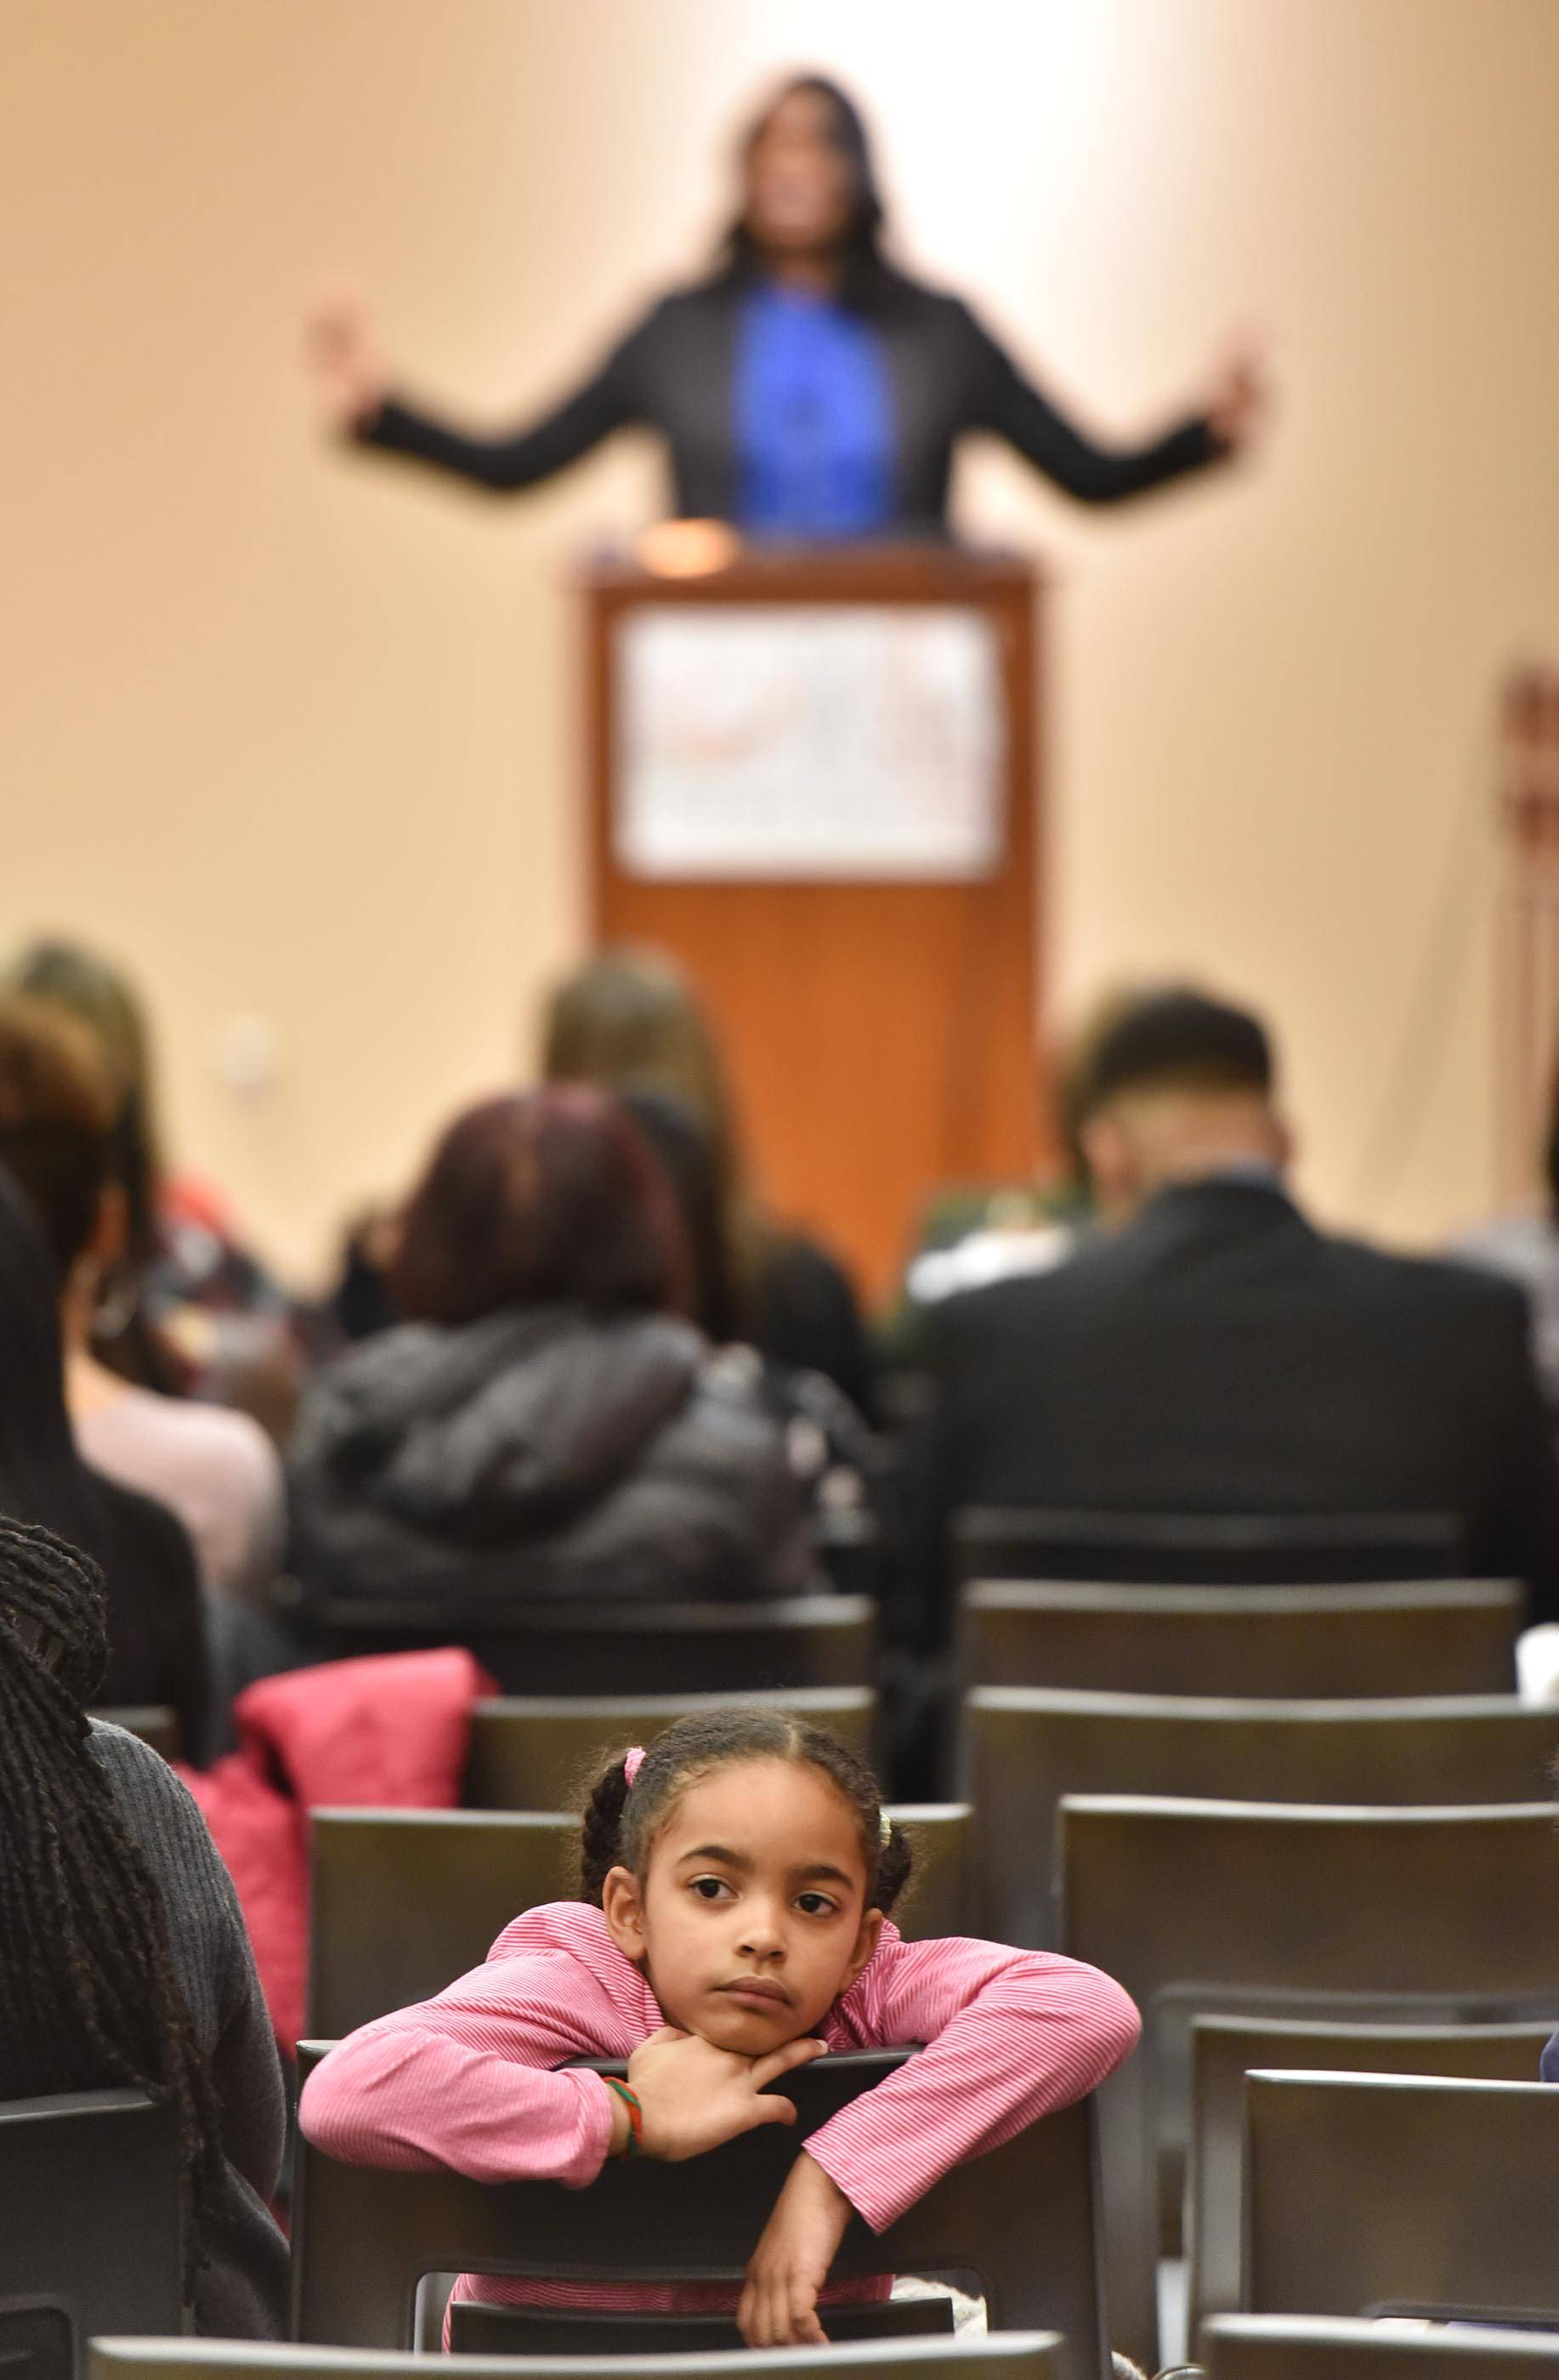 Emerson Carter, 6, looks around the room Saturday during the Black History Family Festival at the Gail Borden Public Library in Elgin as Cook County State's Attorney Kim Foxx gives a keynote speech. Foxx grew up in Chicago's Cabrini-Green housing project.